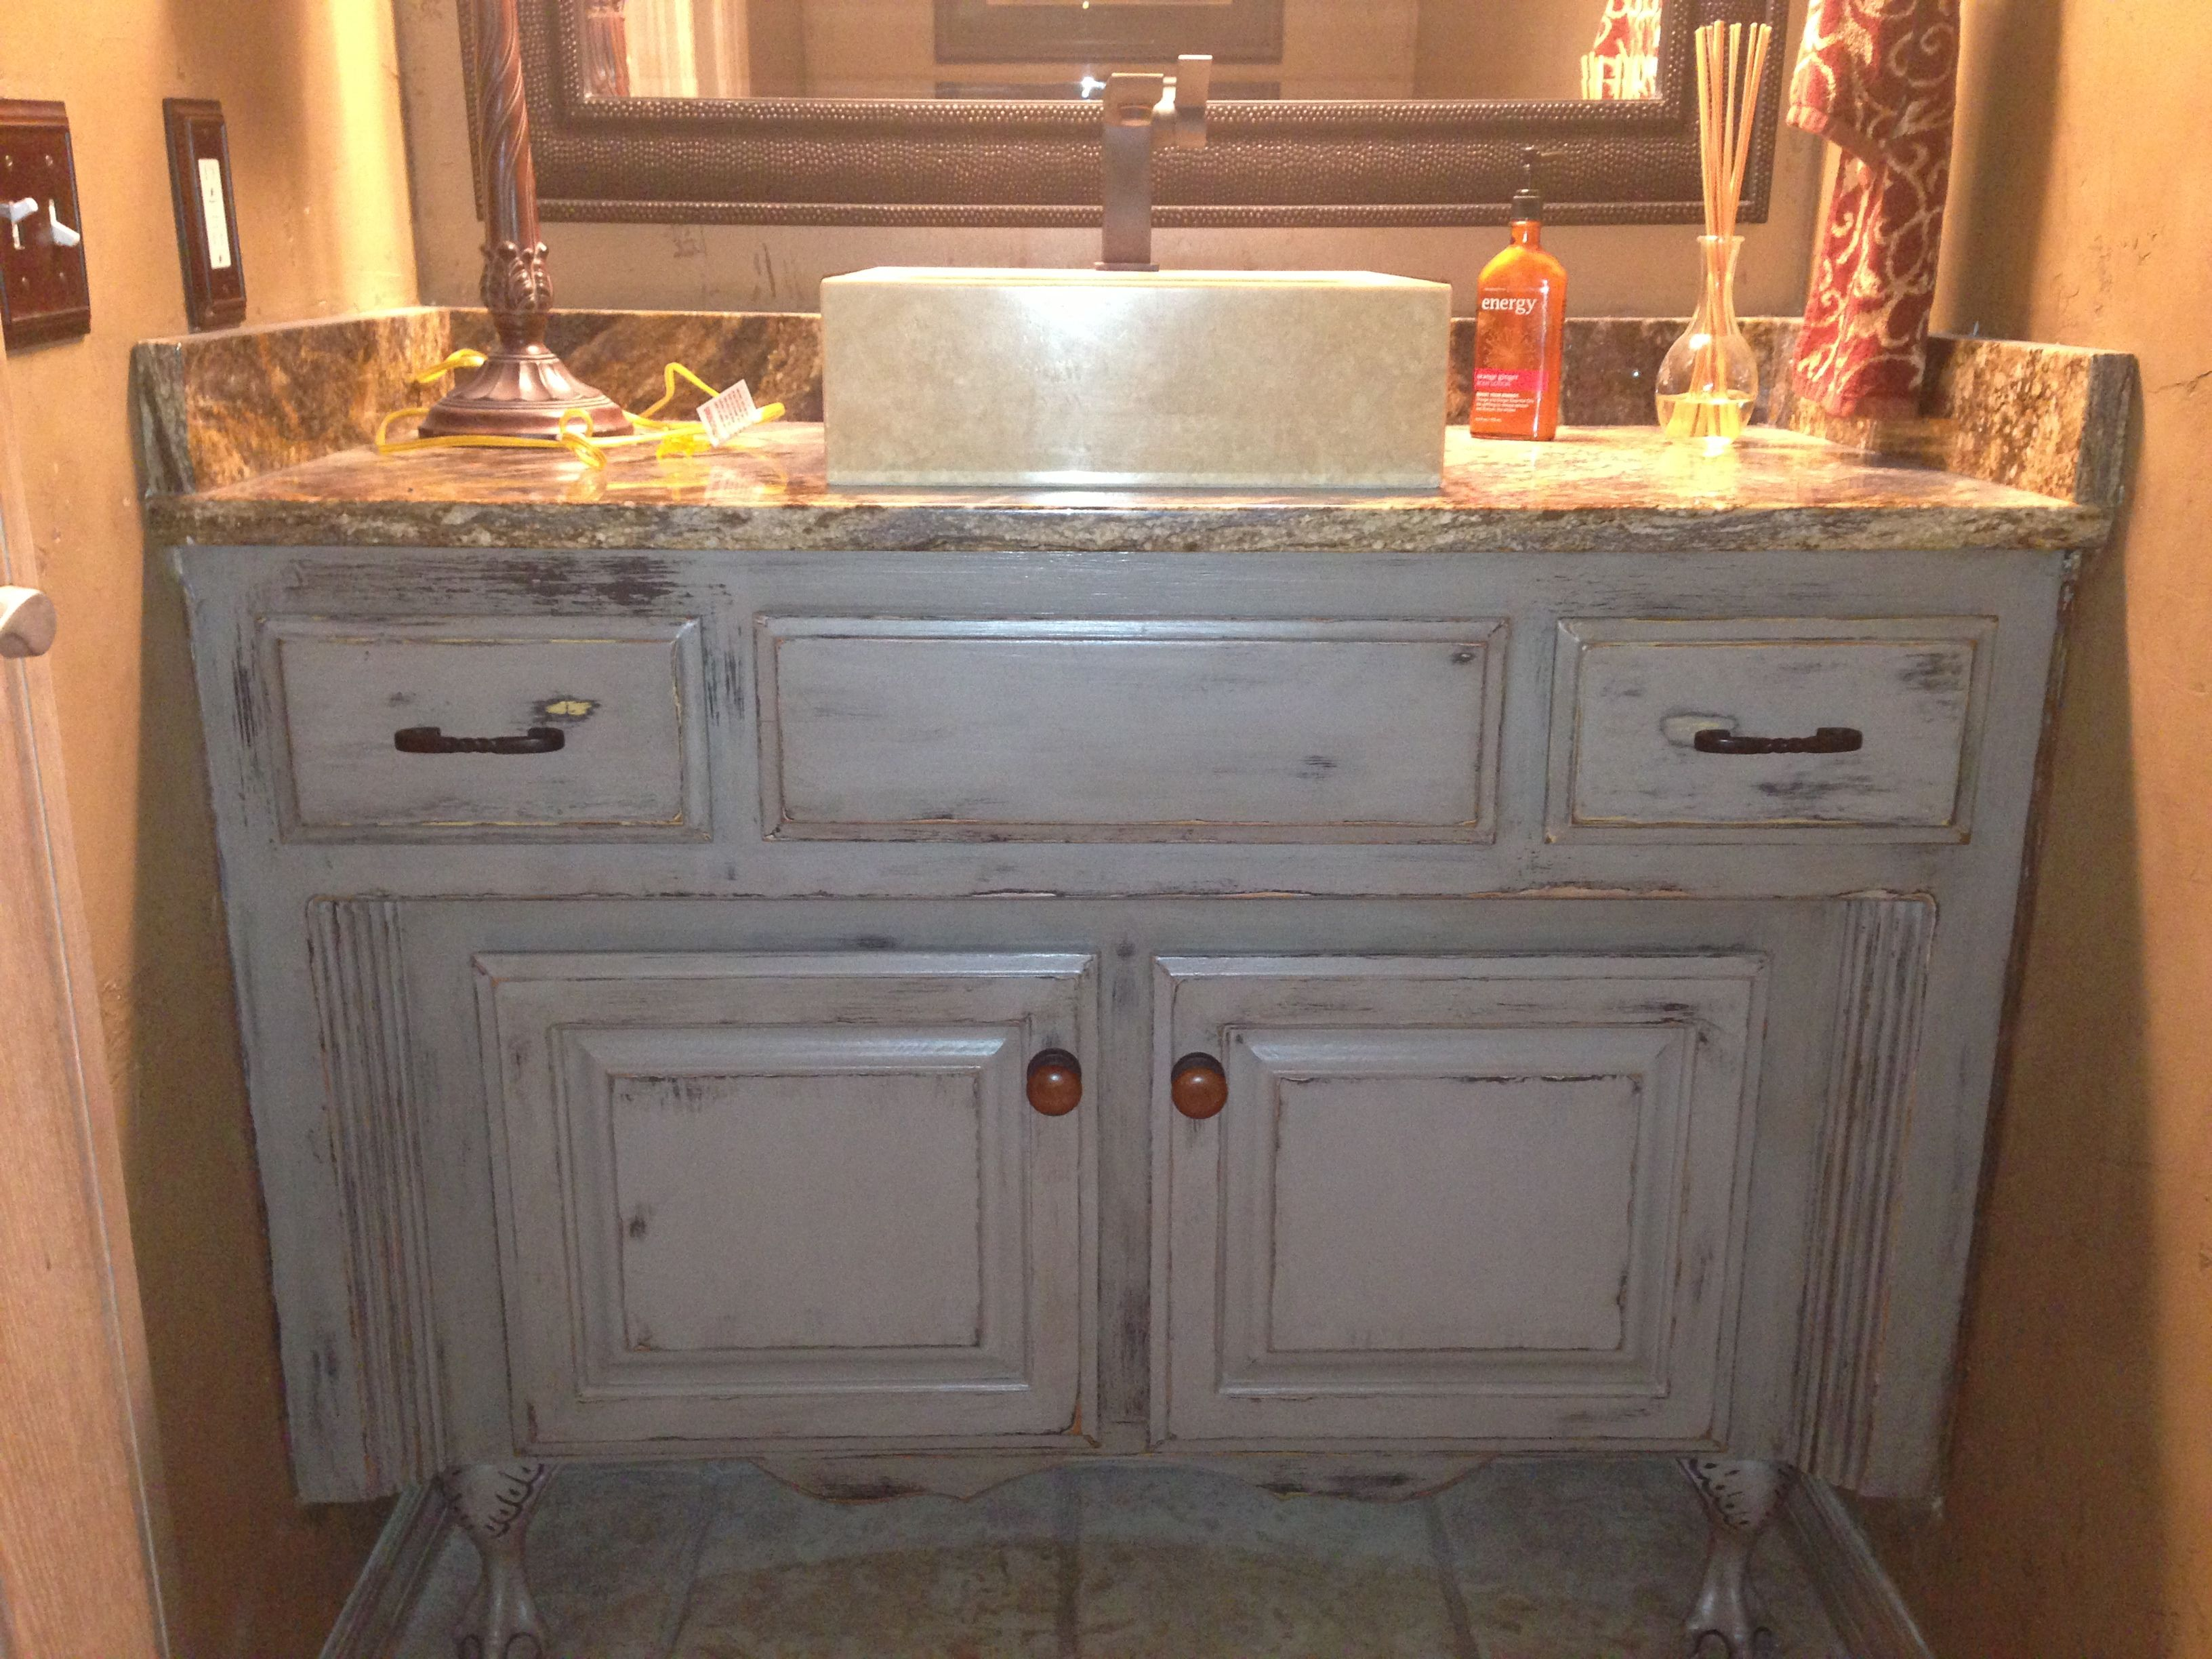 Painting Bathroom Cabinets Gray painted, glazed, distressed bathroom vanity. started with graphite